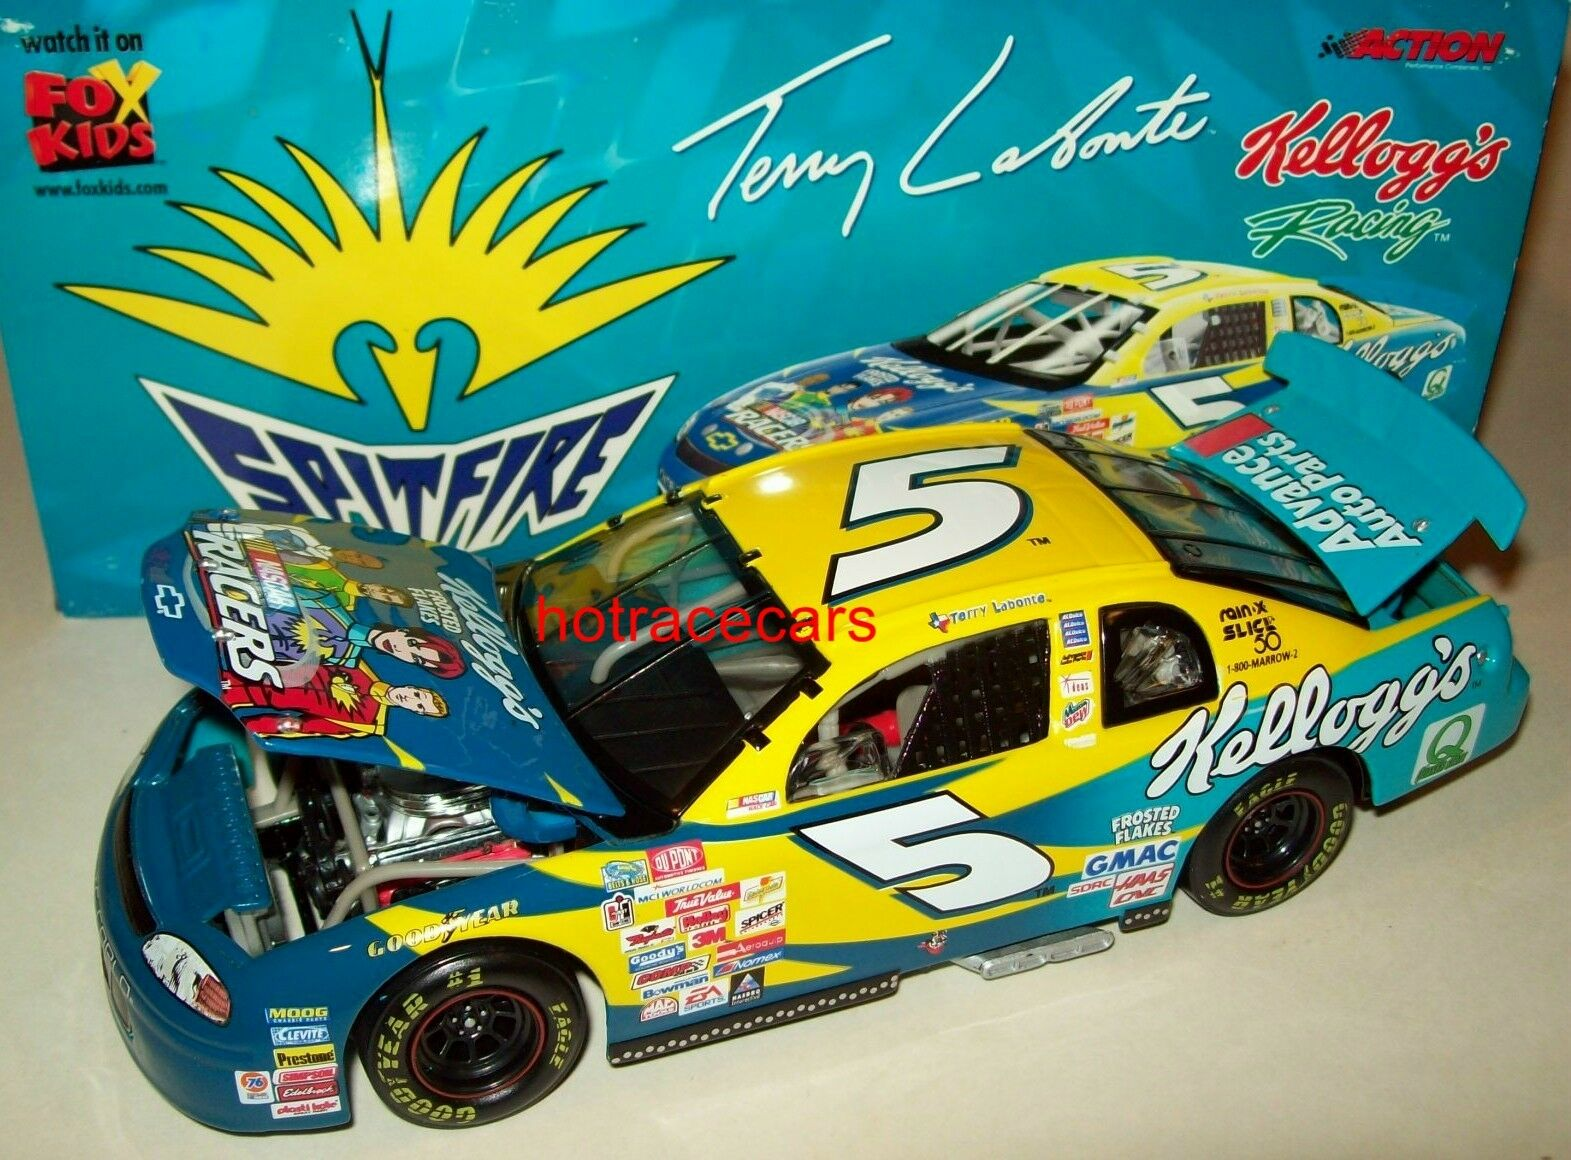 TERRY LABONTE 1999 NASCAR RACERS SPITFIRE KELLOGG'S CHEVY HOMESTEAD 1 24